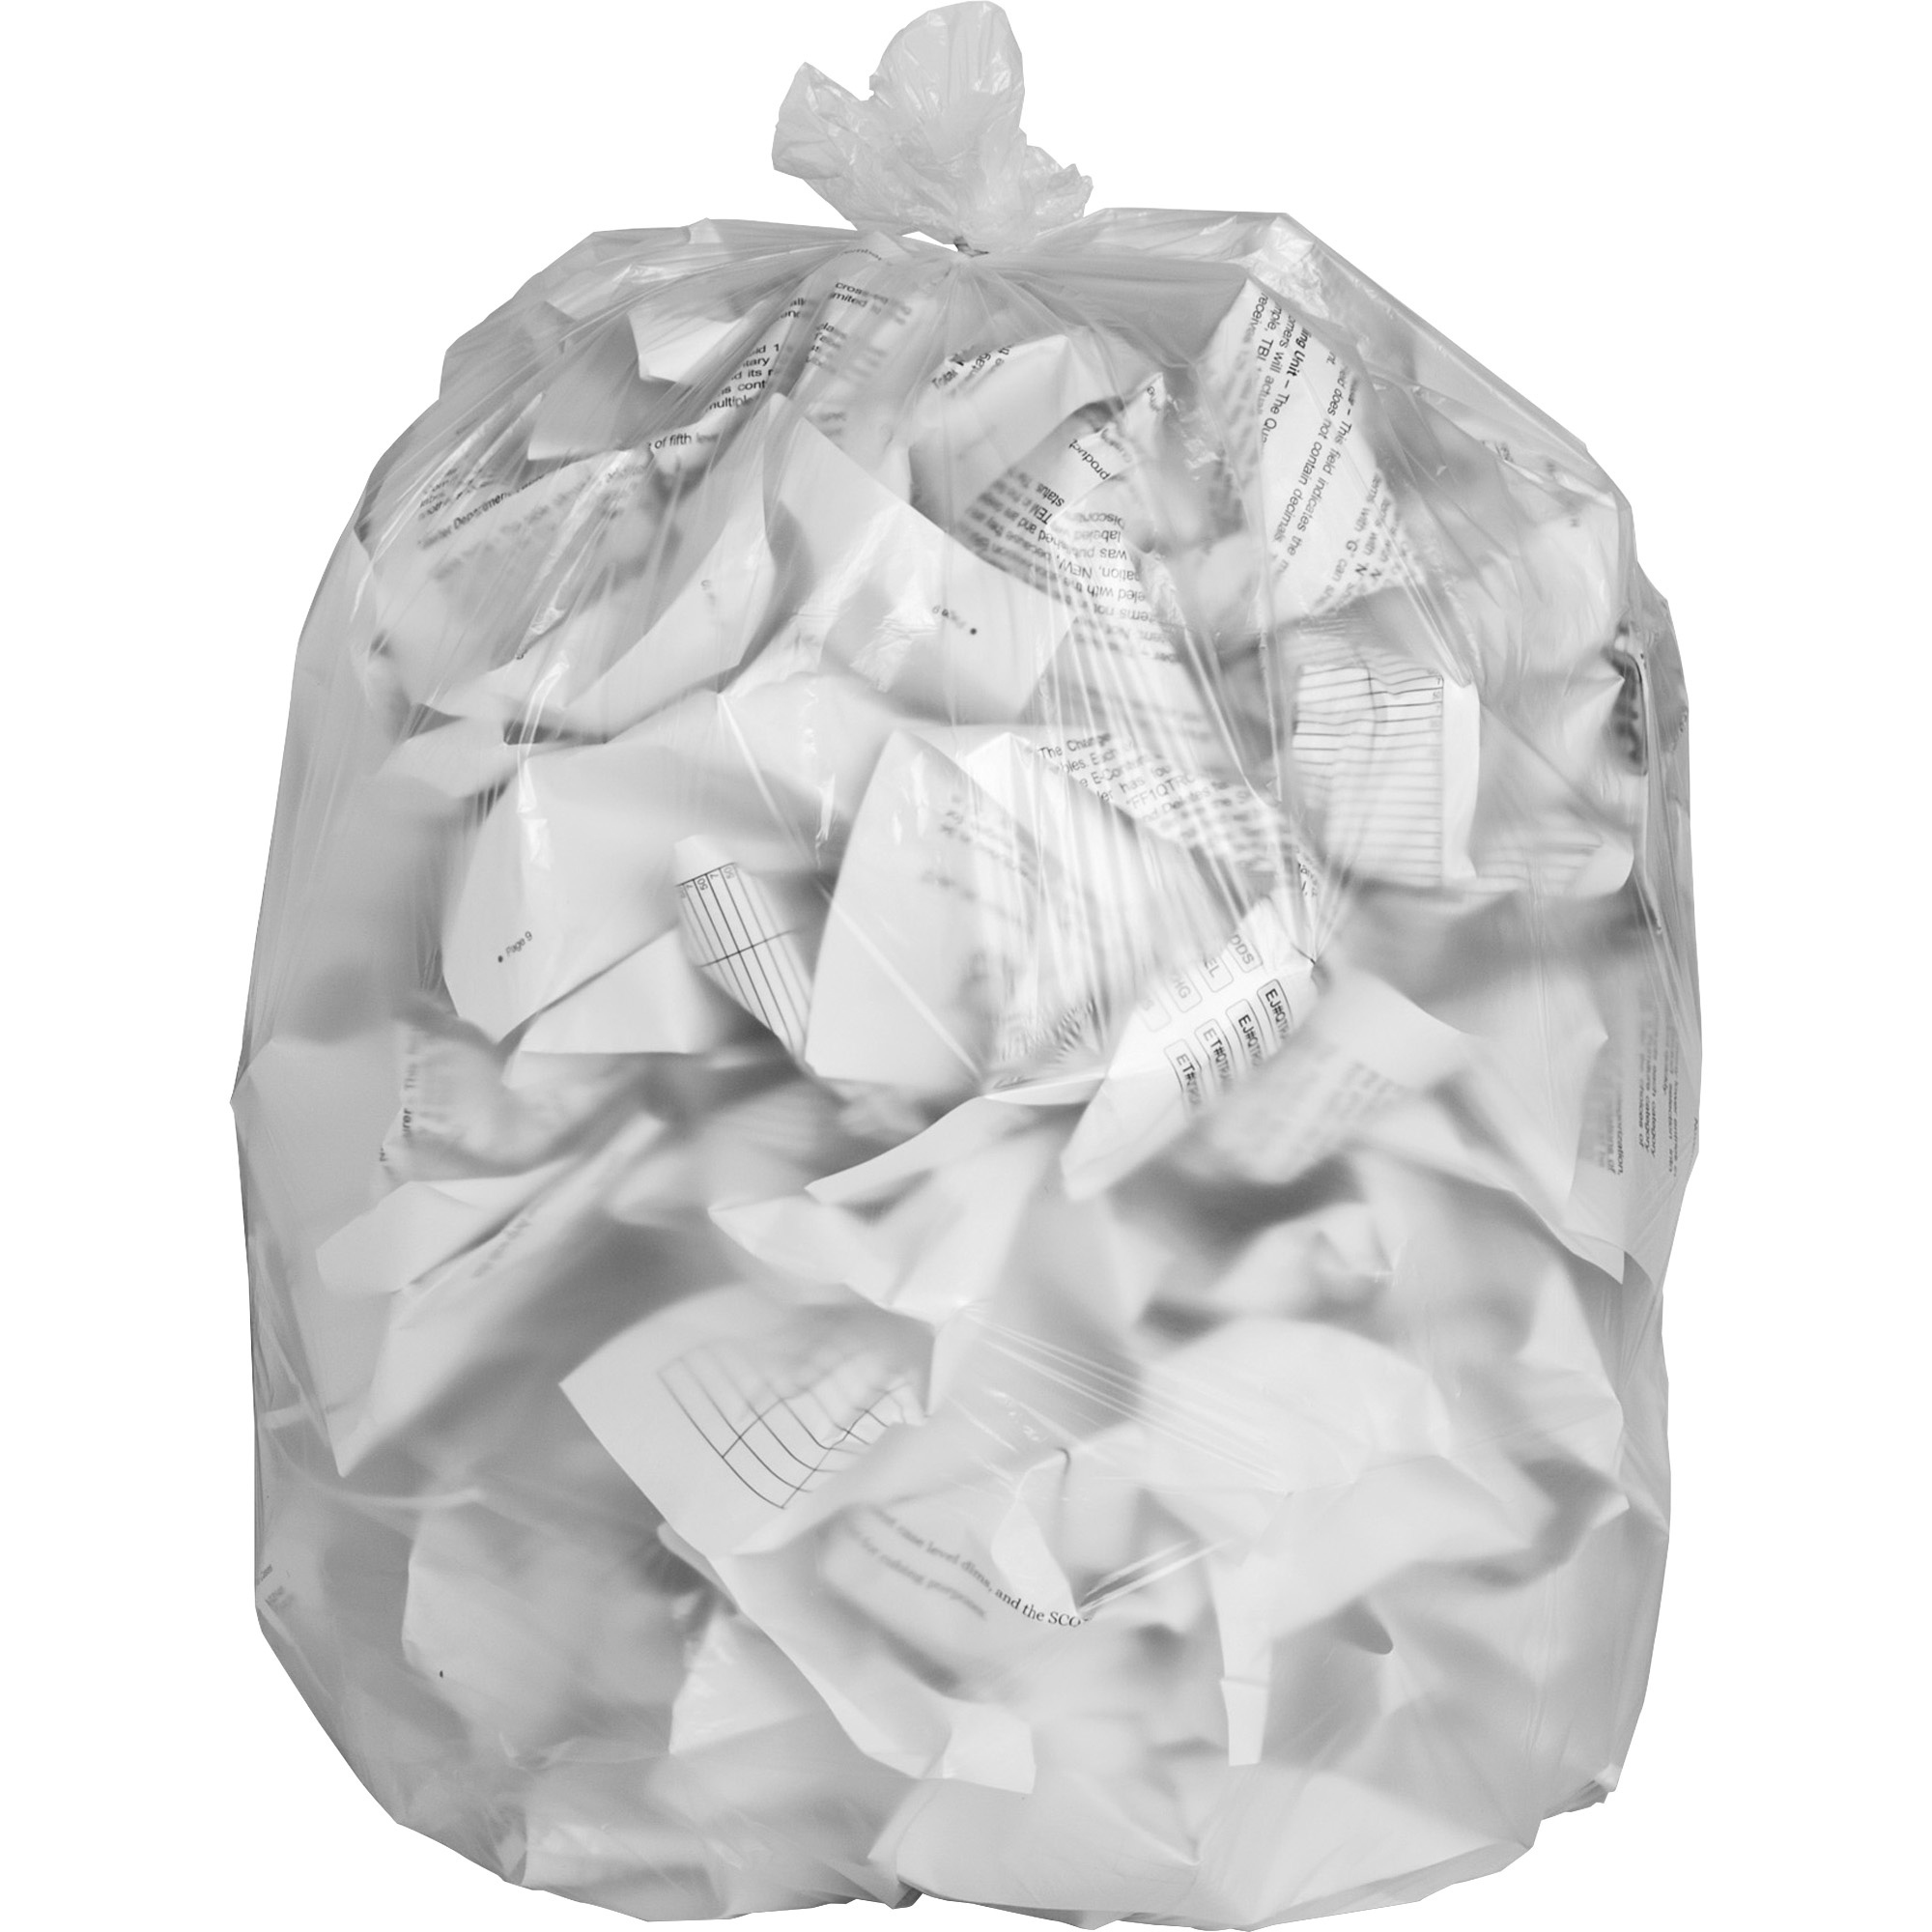 Special Buy, SPZHD434814, High-density Resin Trash Bags, 200 / Carton, Clear, 56 gal